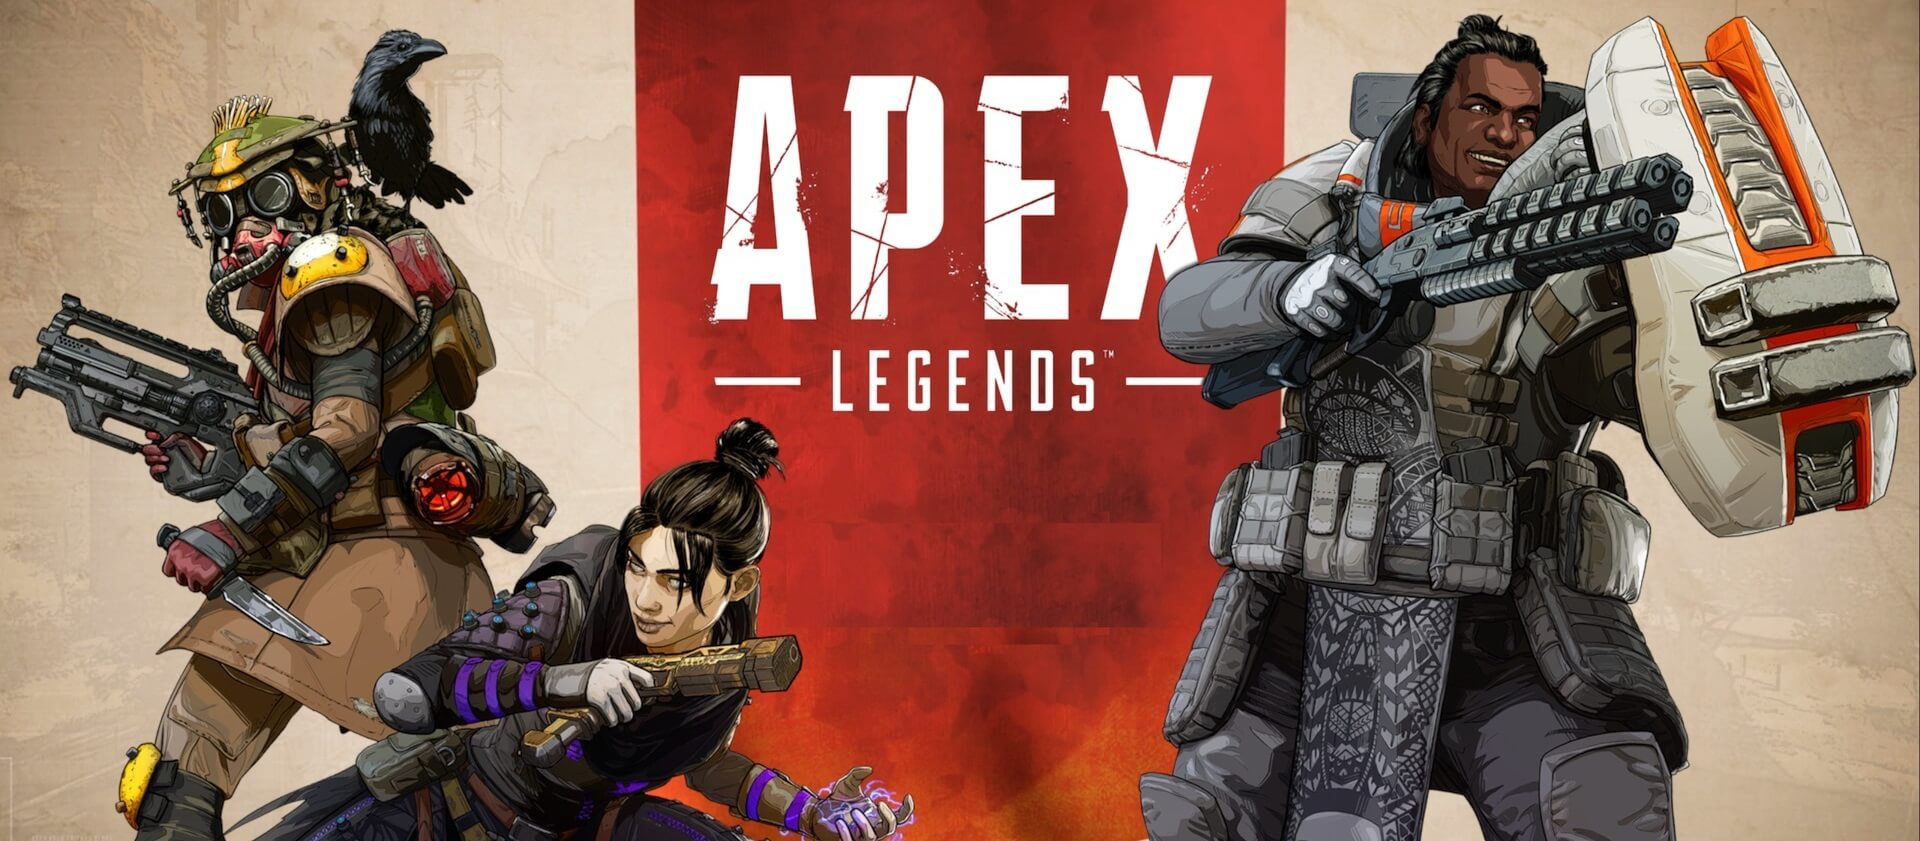 Apex Legends - a battle royal game